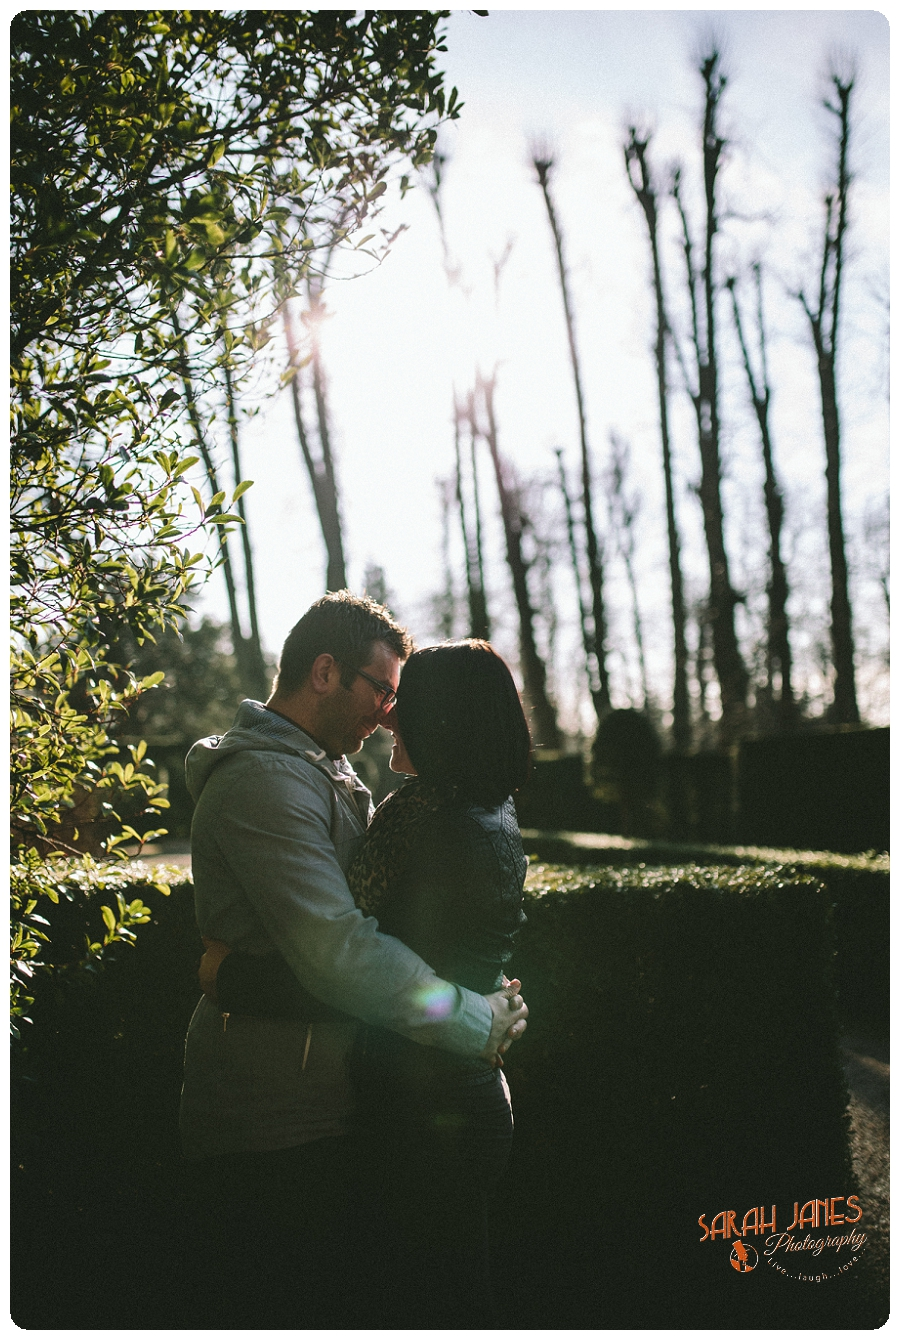 Pre wedding day shoot at Erddig Hall, Sarah Janes photography at Erddig Hall, Photography at Erddig hall_0002.jpg